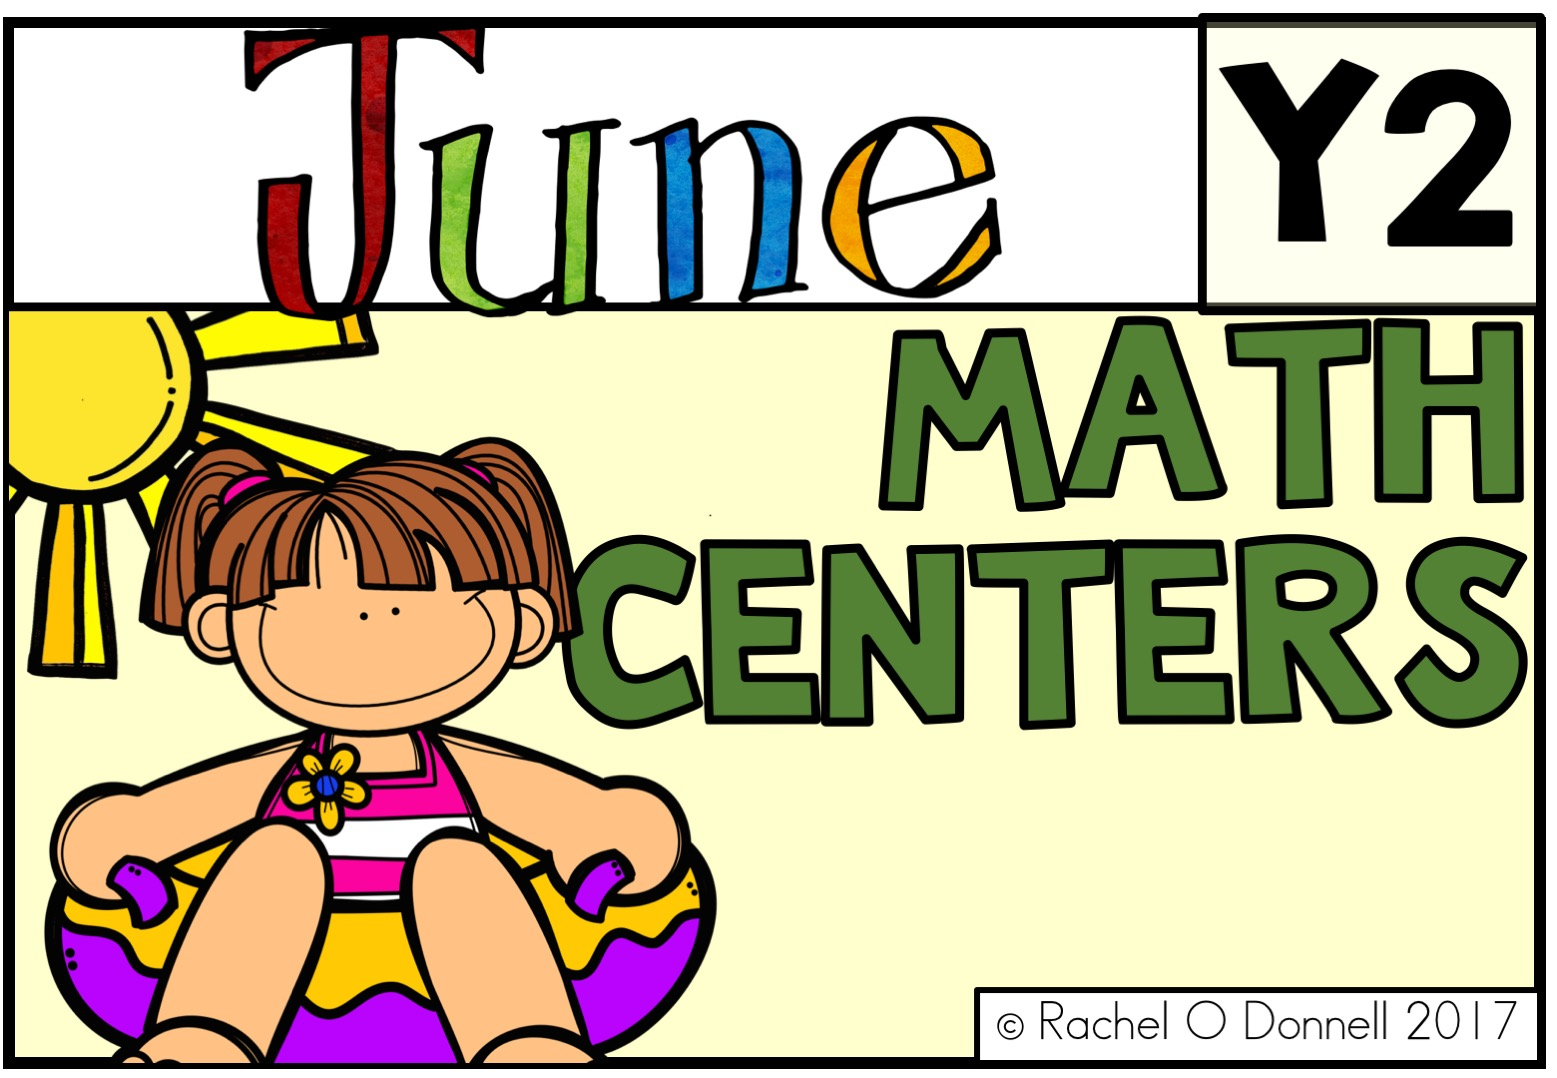 June Year 2 Maths Centers